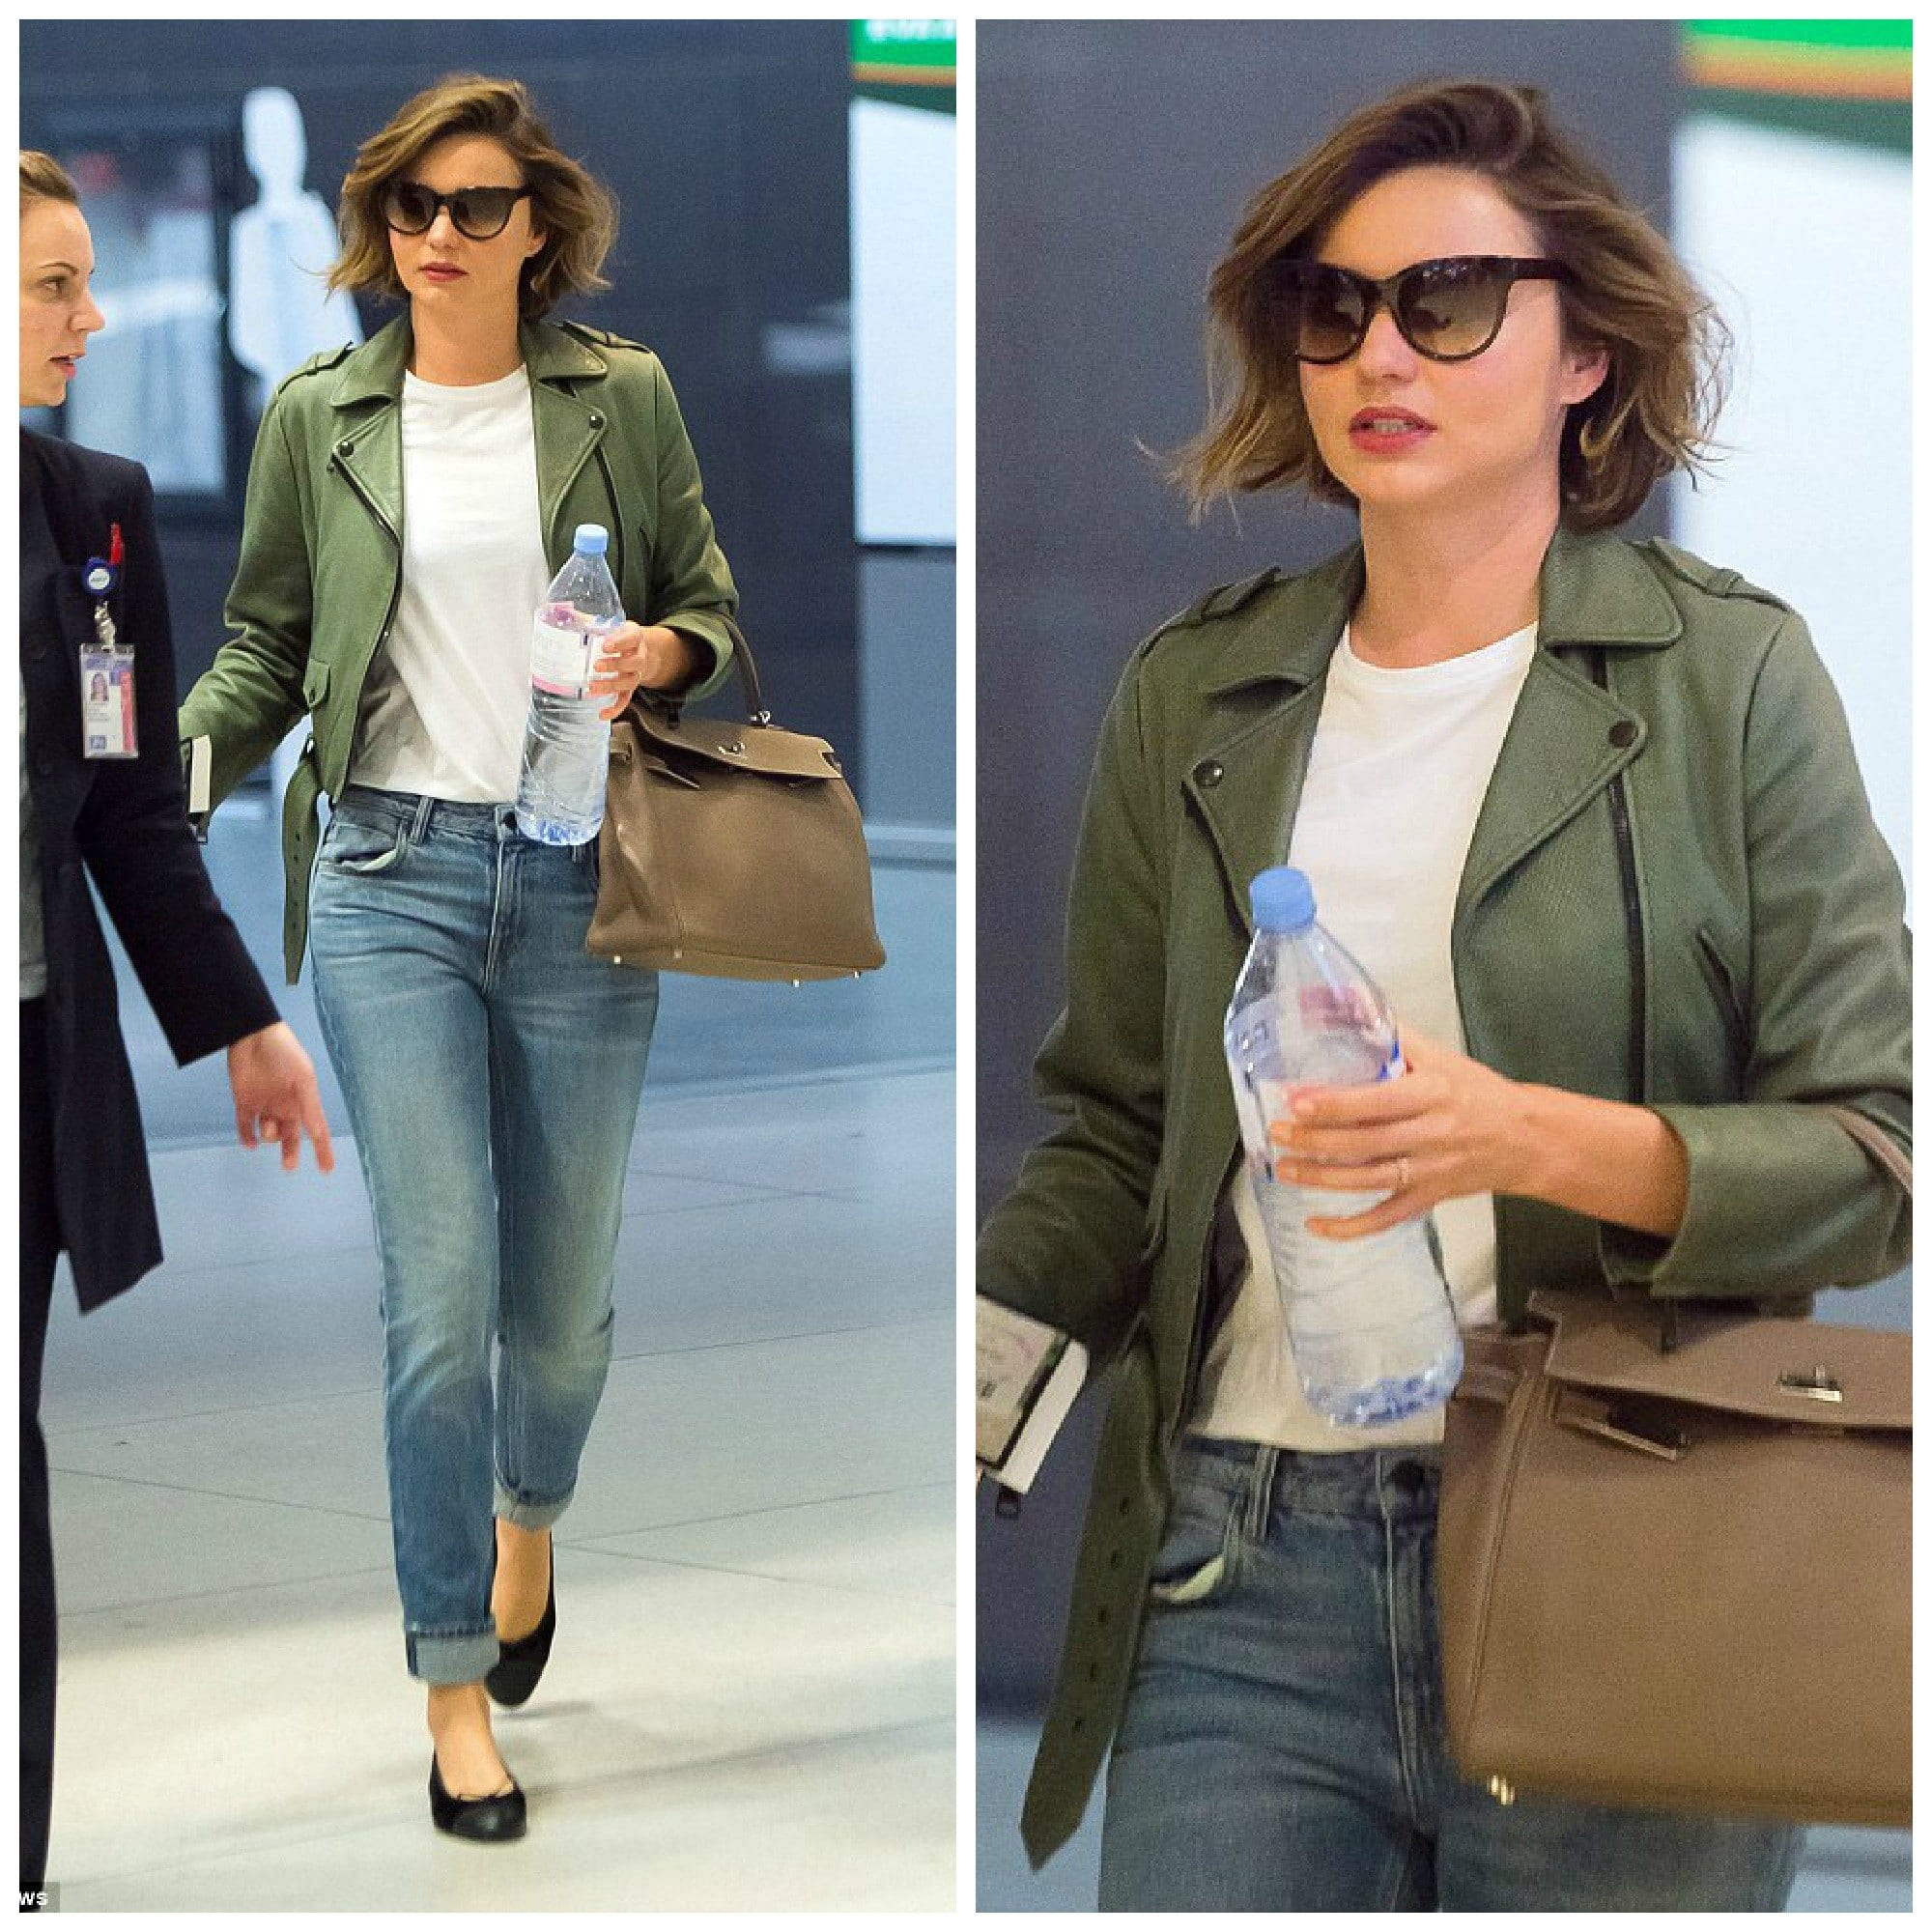 miranda-kerr-green-leather-jacket-outfit Outfits with Leather Jacket-19 Ways to Style Leather Jacket